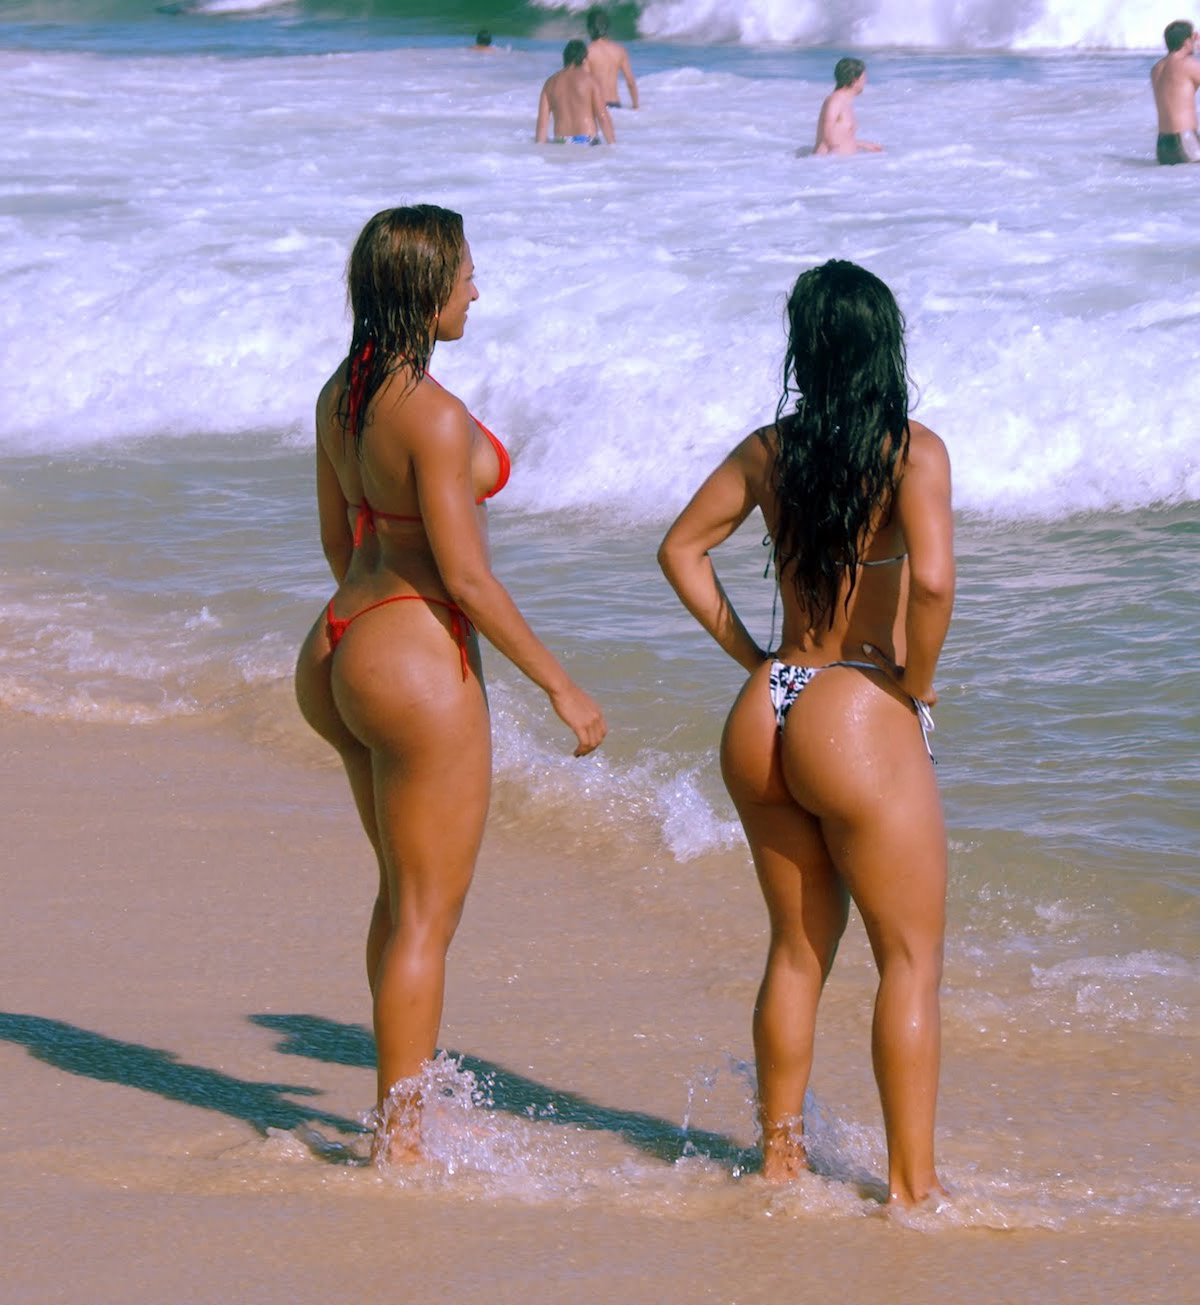 Nude brazilian women on beach